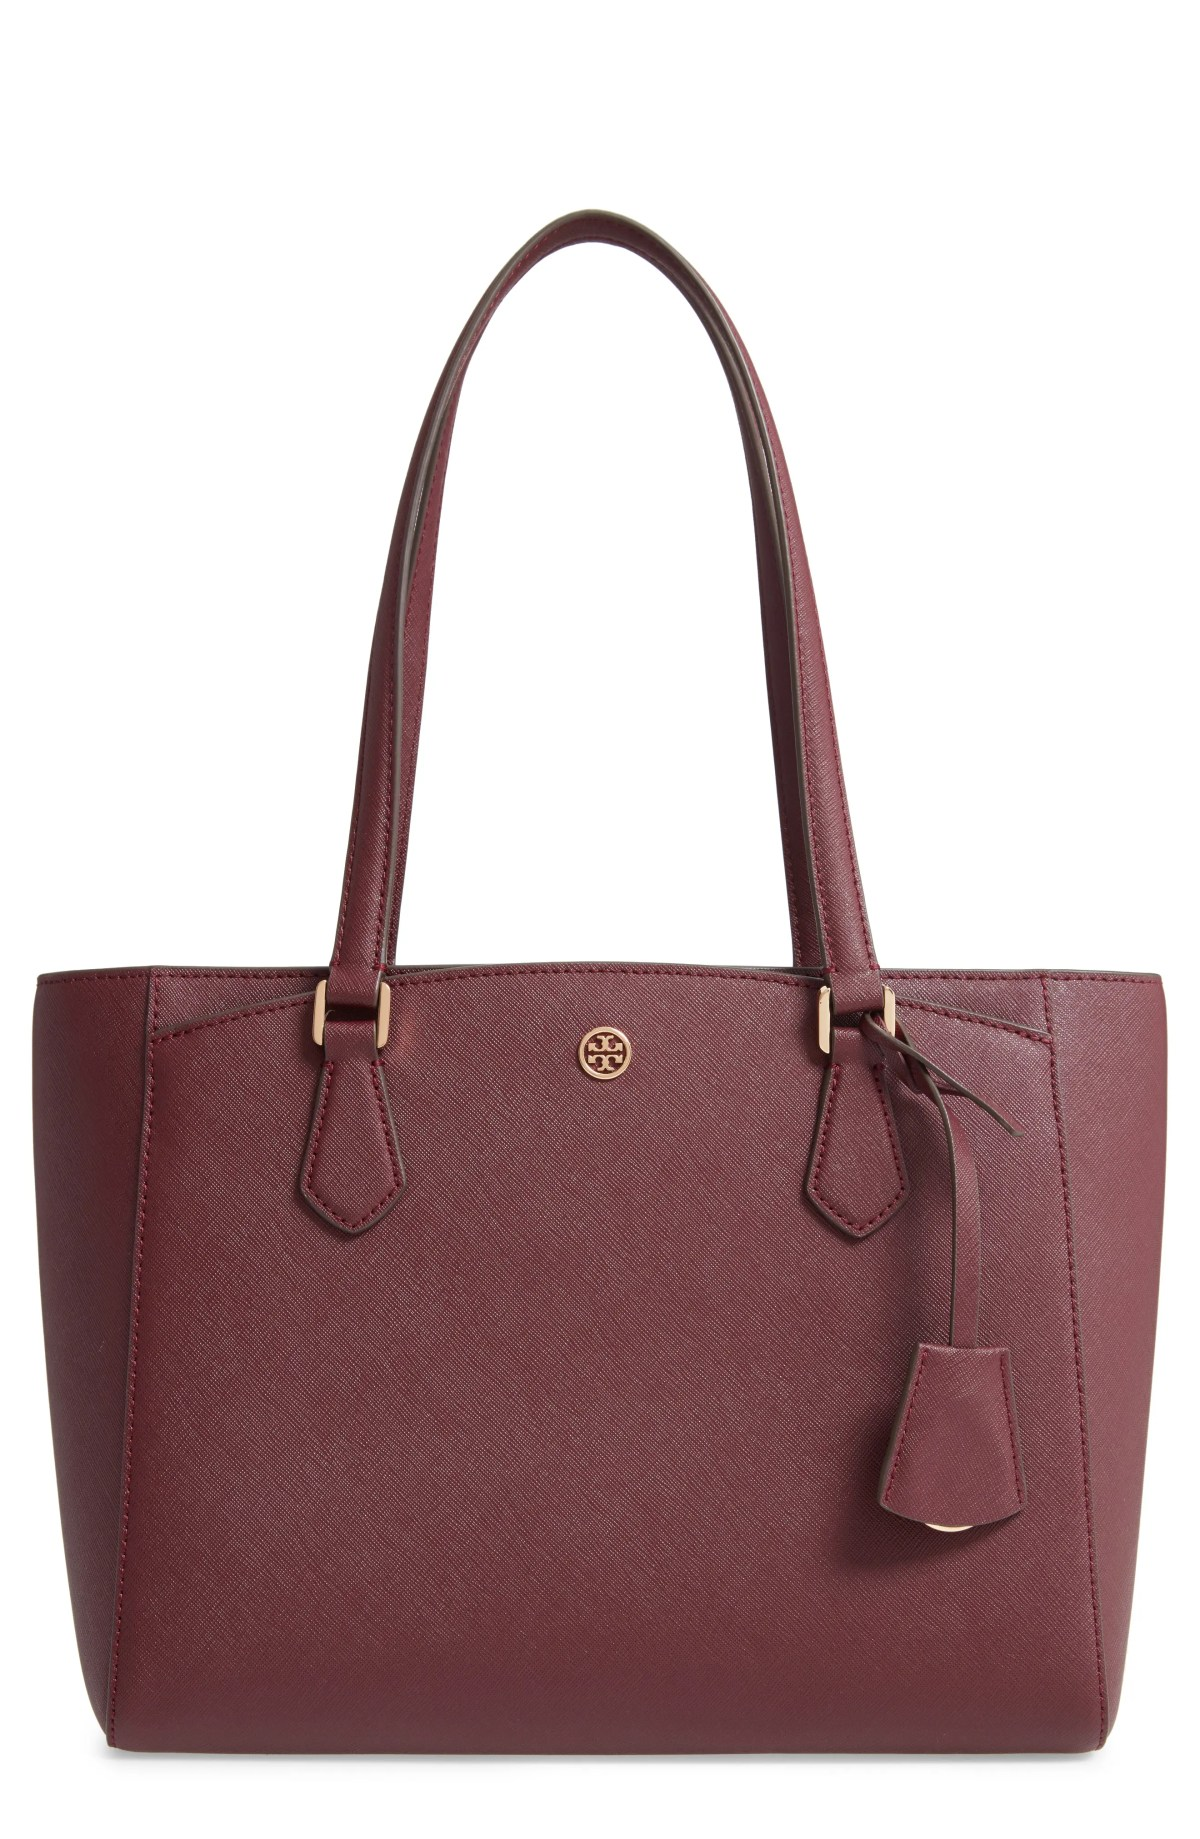 TORY BURCH Small Robinson Saffiano Leather Tote, Main, color, PORT